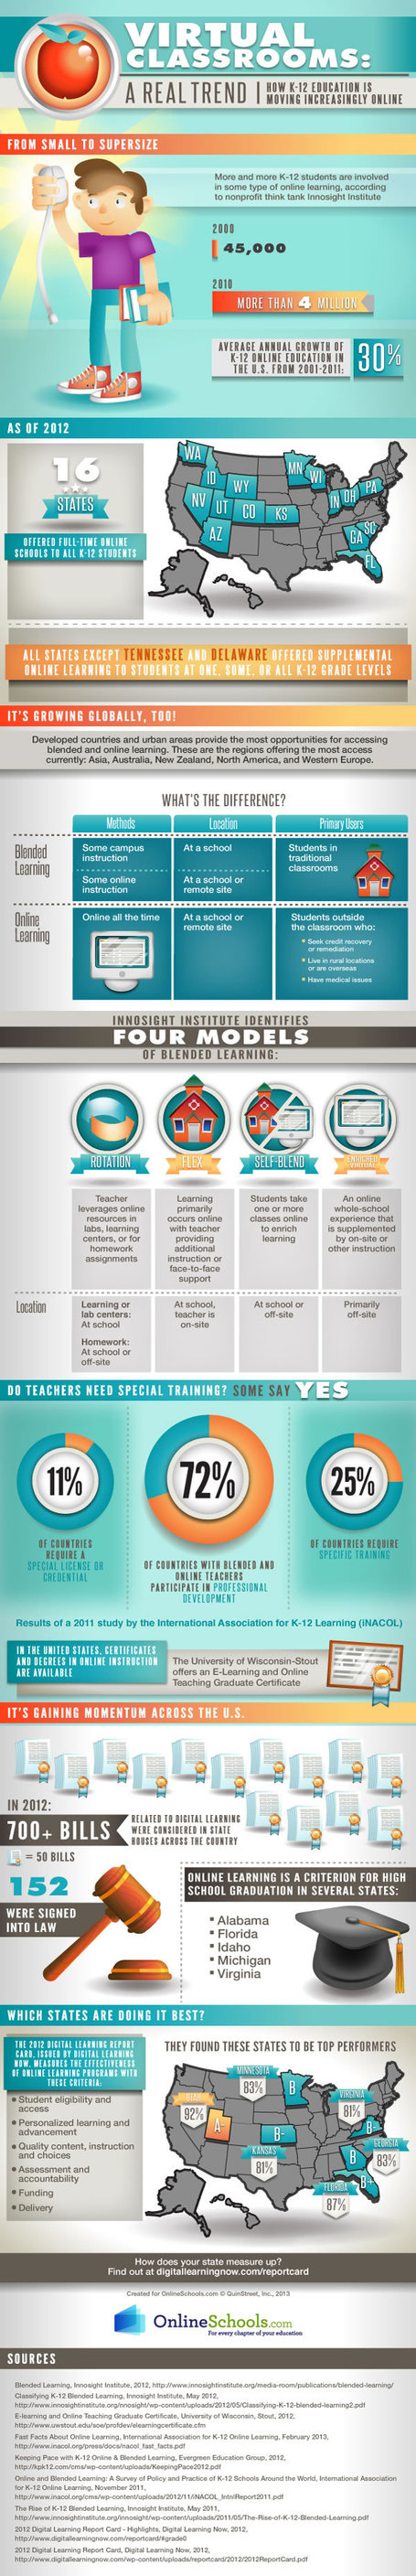 K-12 Distance Learning and Blended Learning: Trends on the Rise? | ENT | Scoop.it